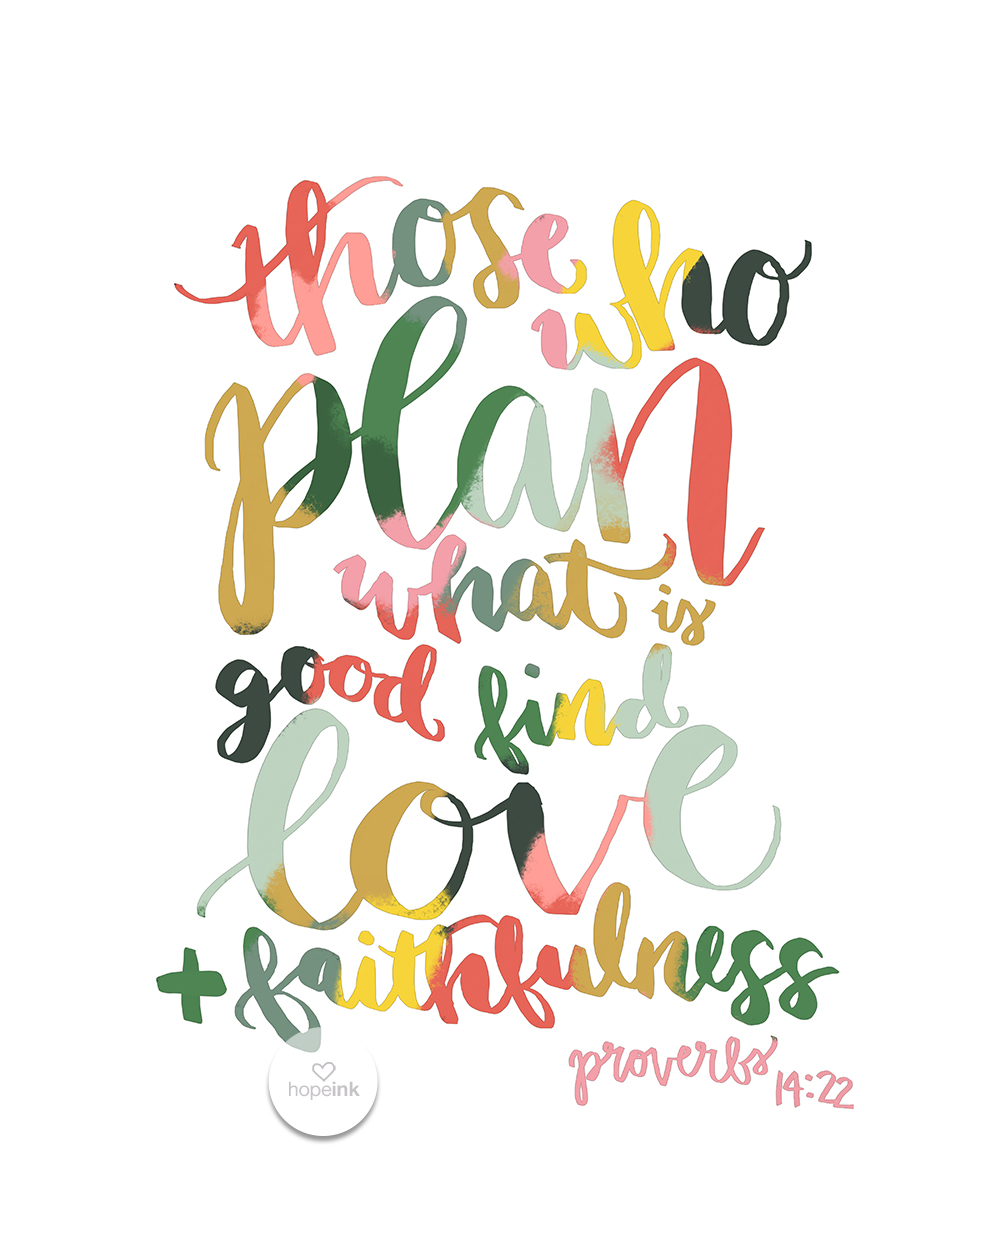 Plan What Is Good | Rainbow Scripture Art by Hope Ink.jpg